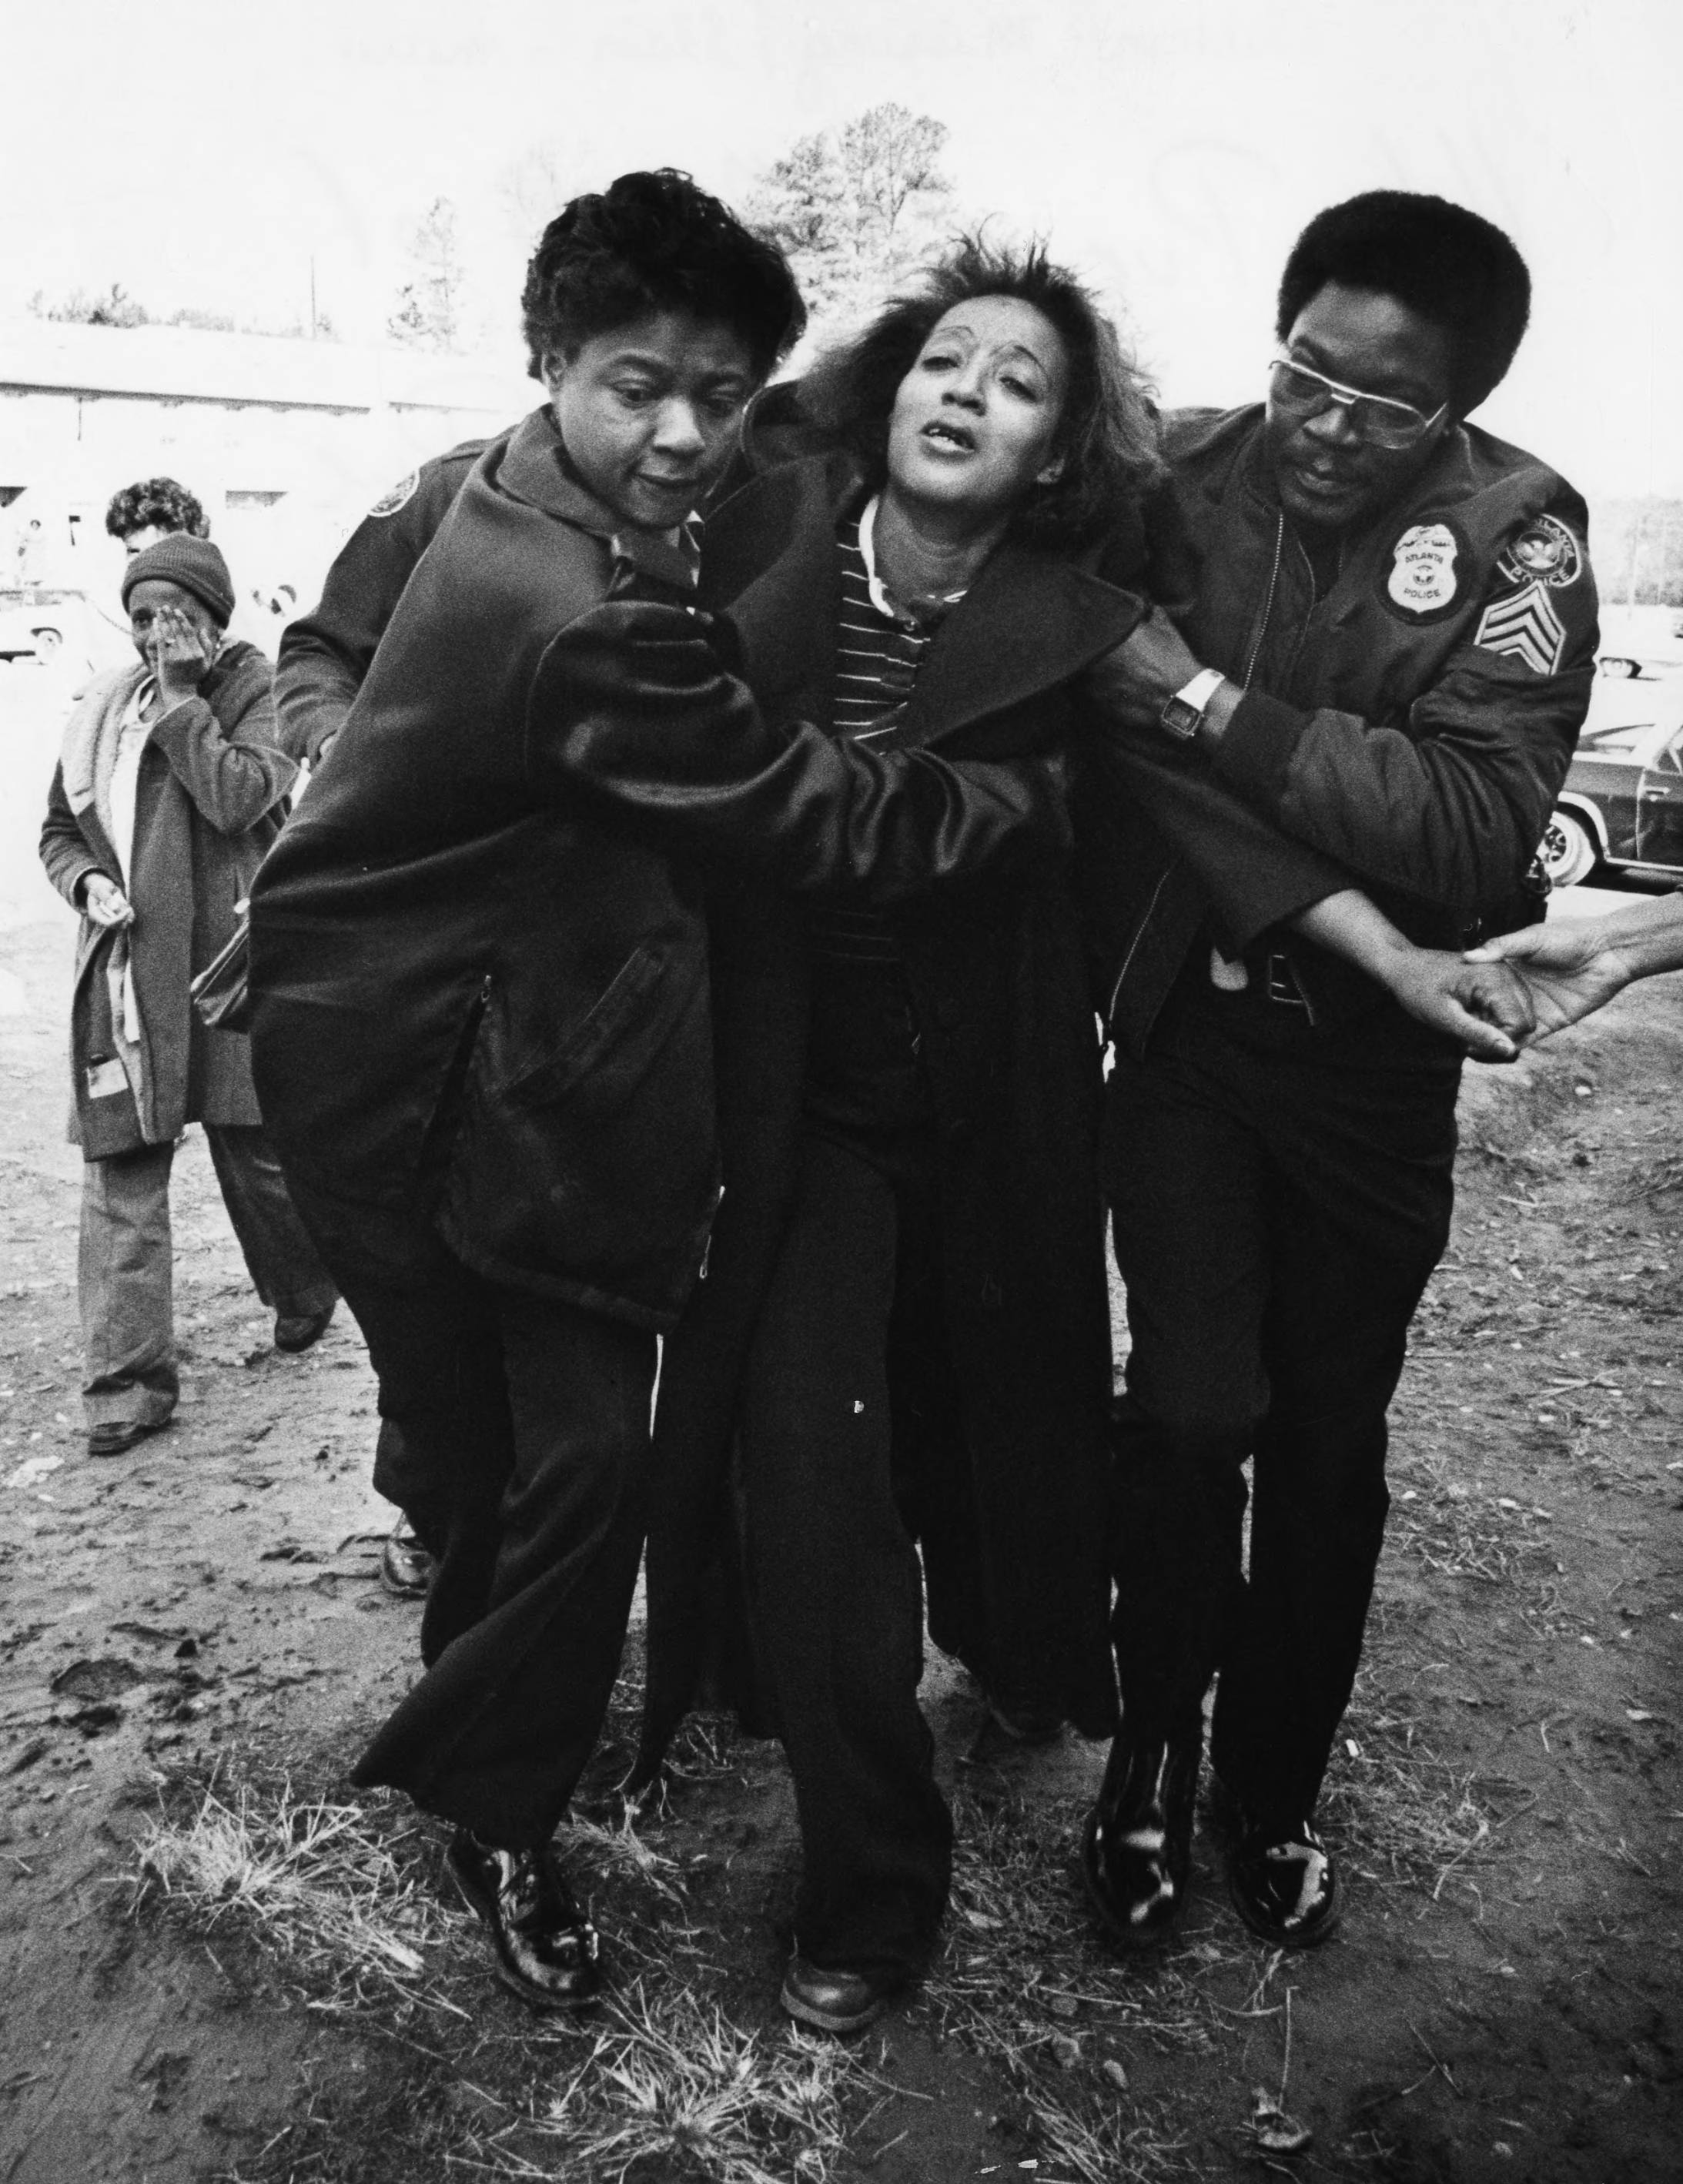 Helen Pue, mother of murdered Terry Pue helped into her apartment by police.  Photograph by George Clark (1981) Atlanta Journal-Constitution Photographic Archives. Special Collections and Archives, Georgia State University Library.